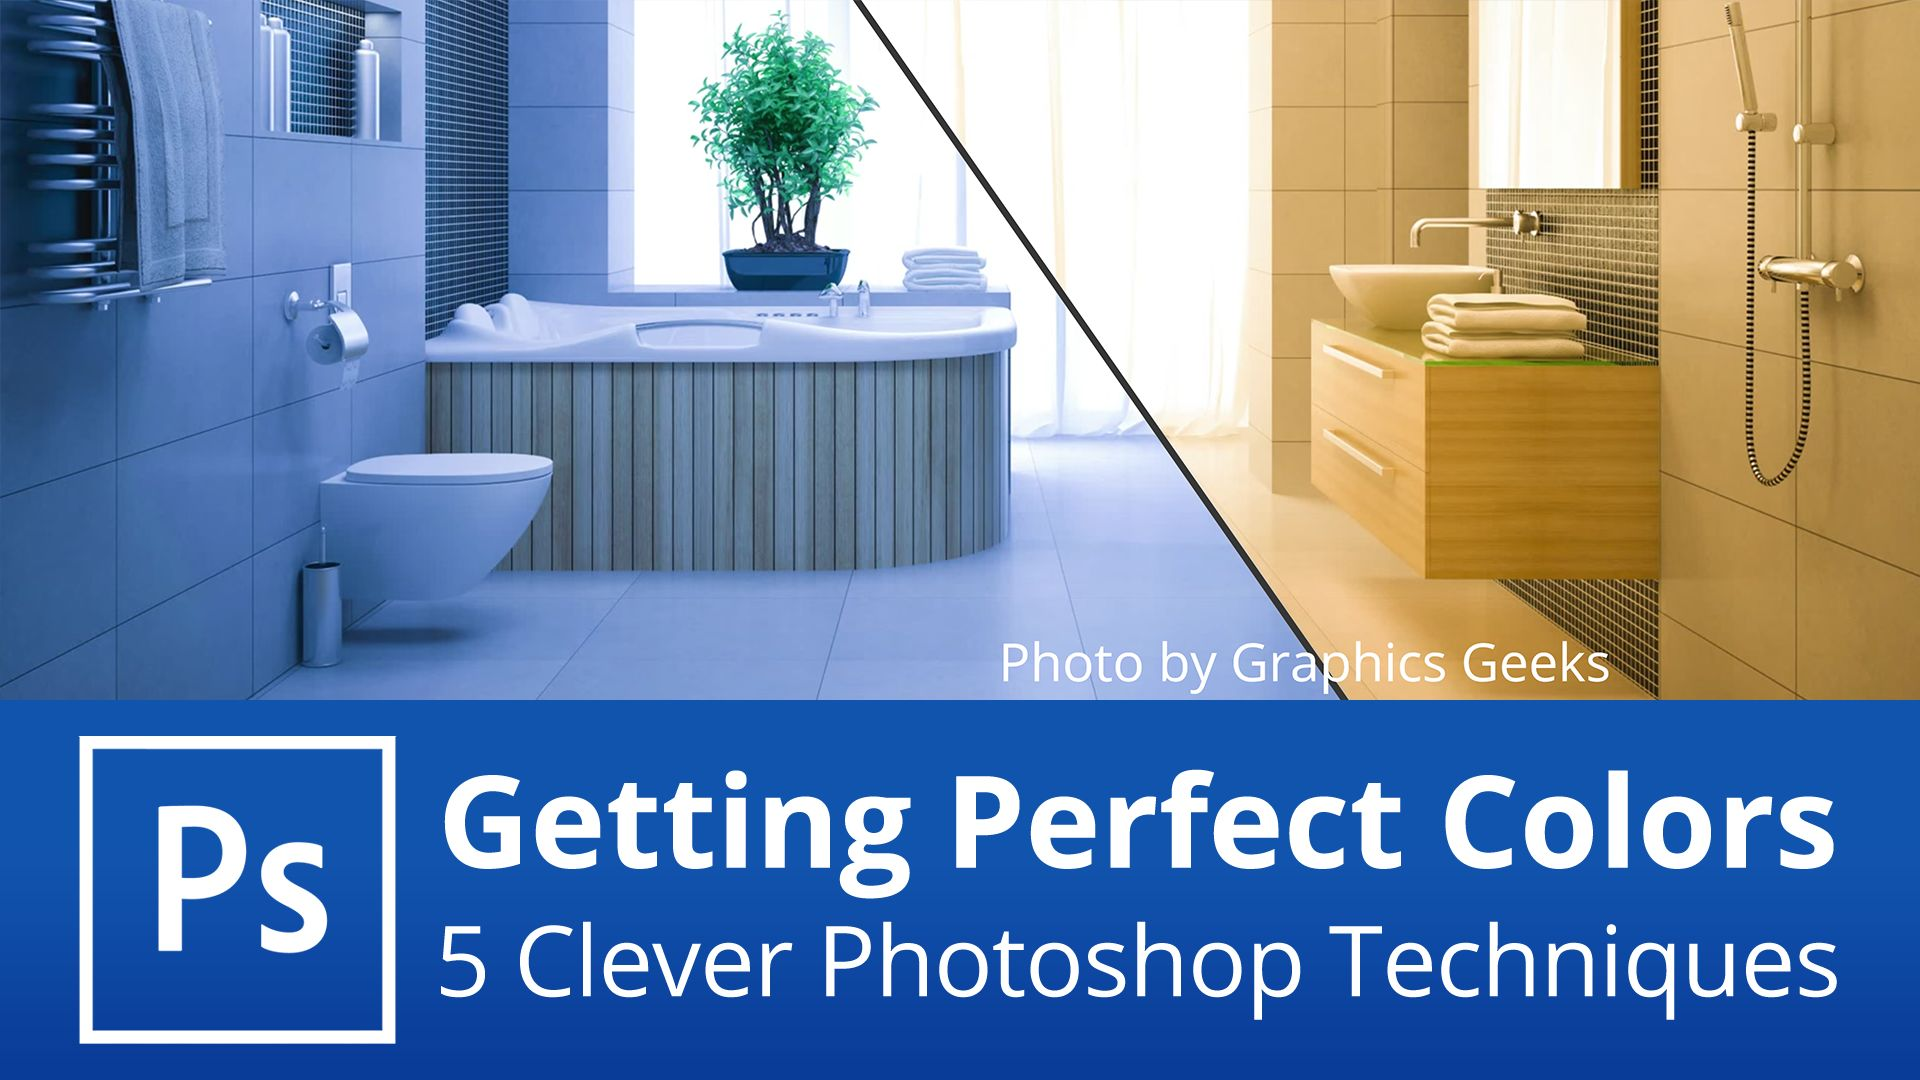 5 Ways to Get Perfect Colors in Photoshop